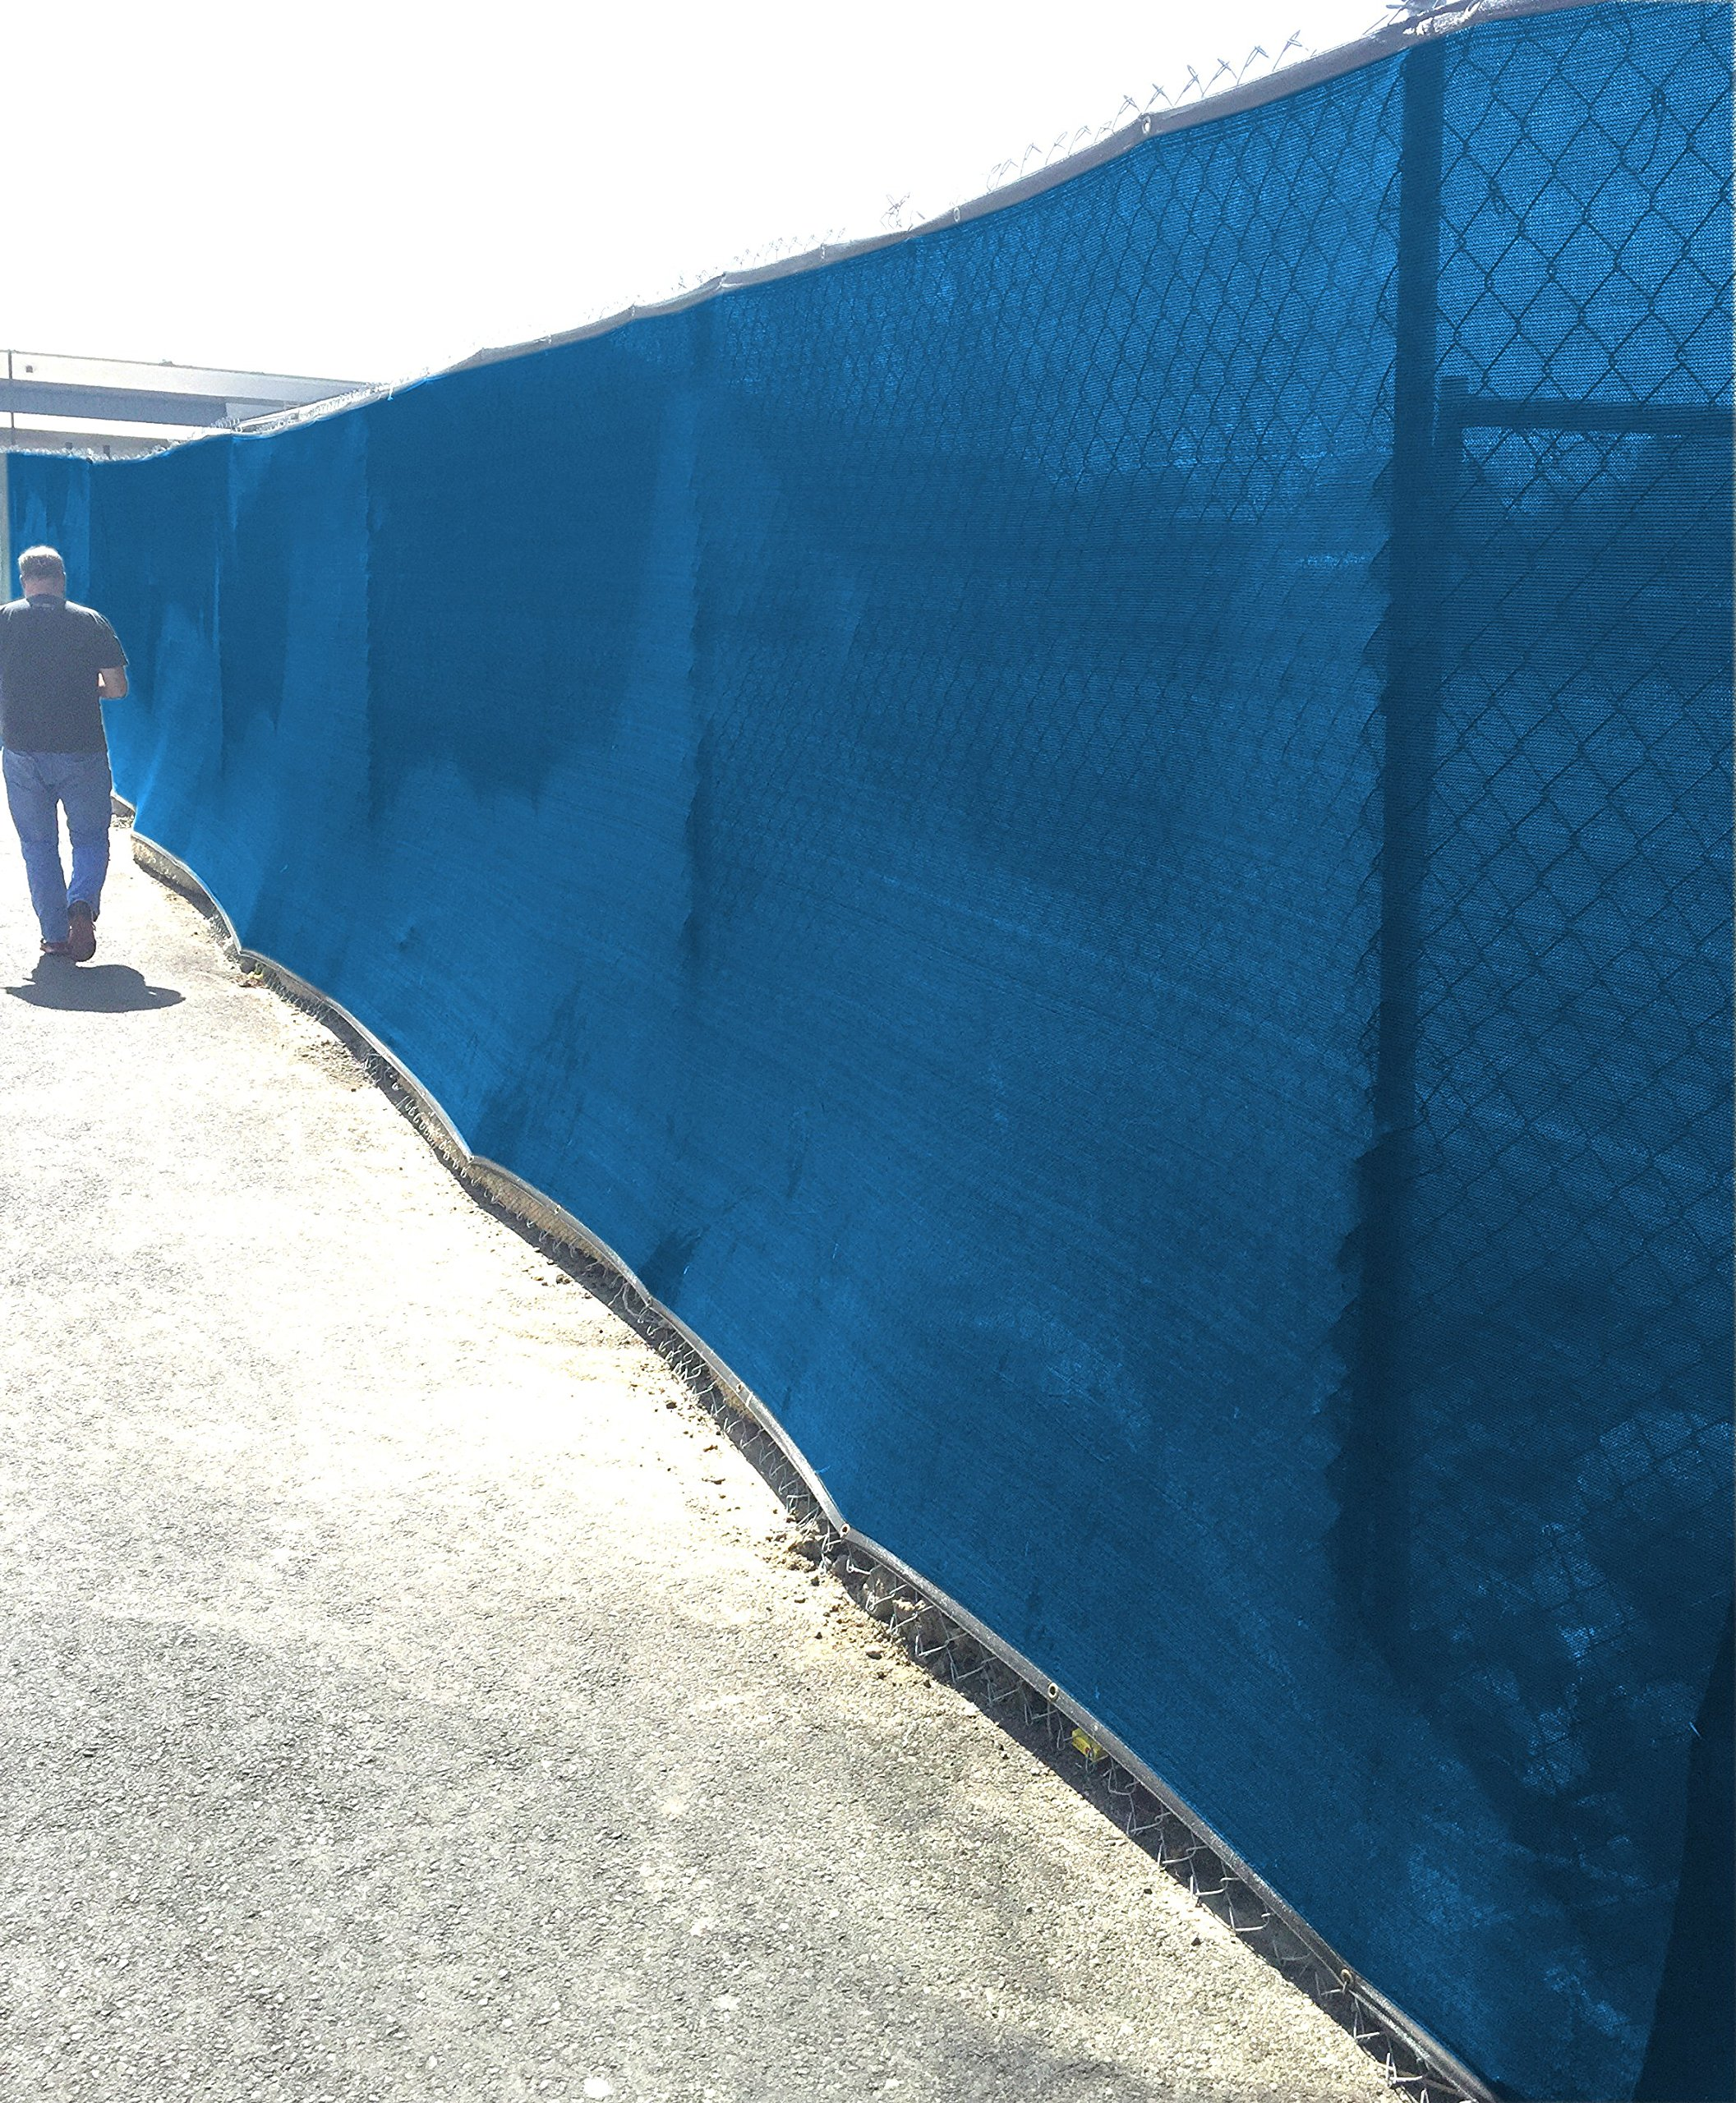 HD-Double Stitched Fence Screen Mesh 8' x 50' (EXTRA LONG) Shade For Fence Cover (Blue)